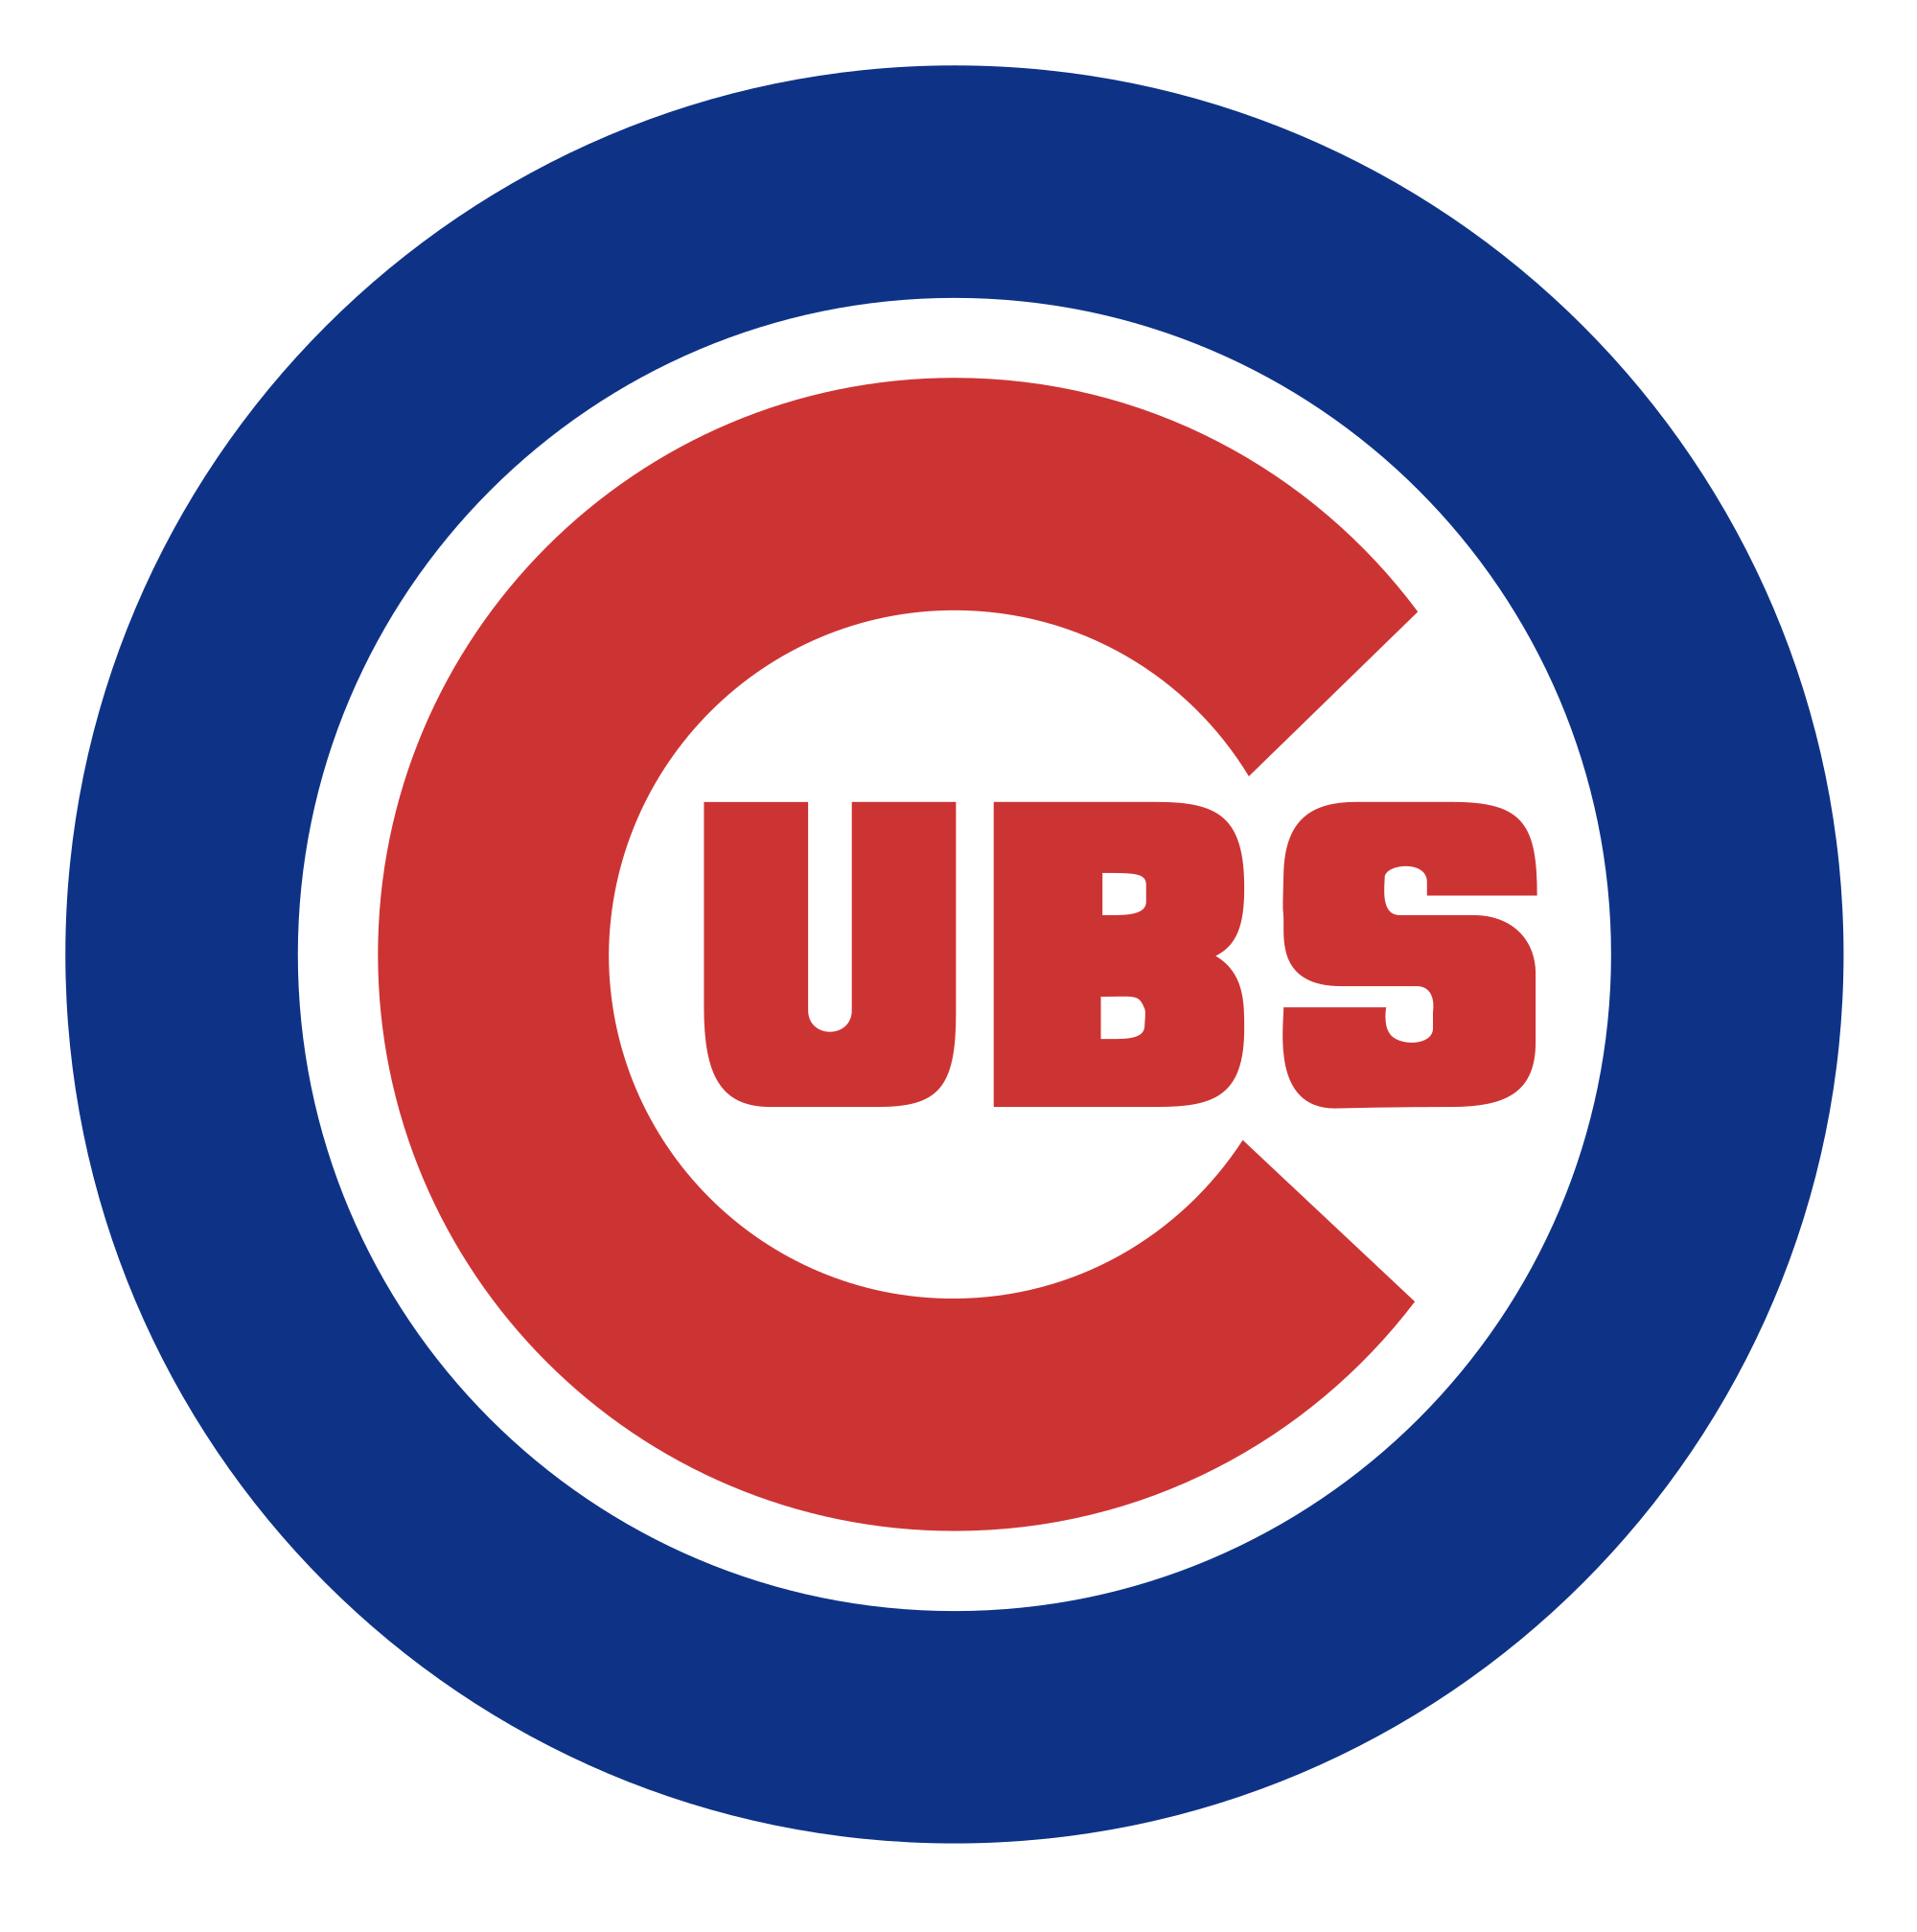 Chicago Cubs Logo - File:Chicago Cubs logo.svg - Wikimedia Commons